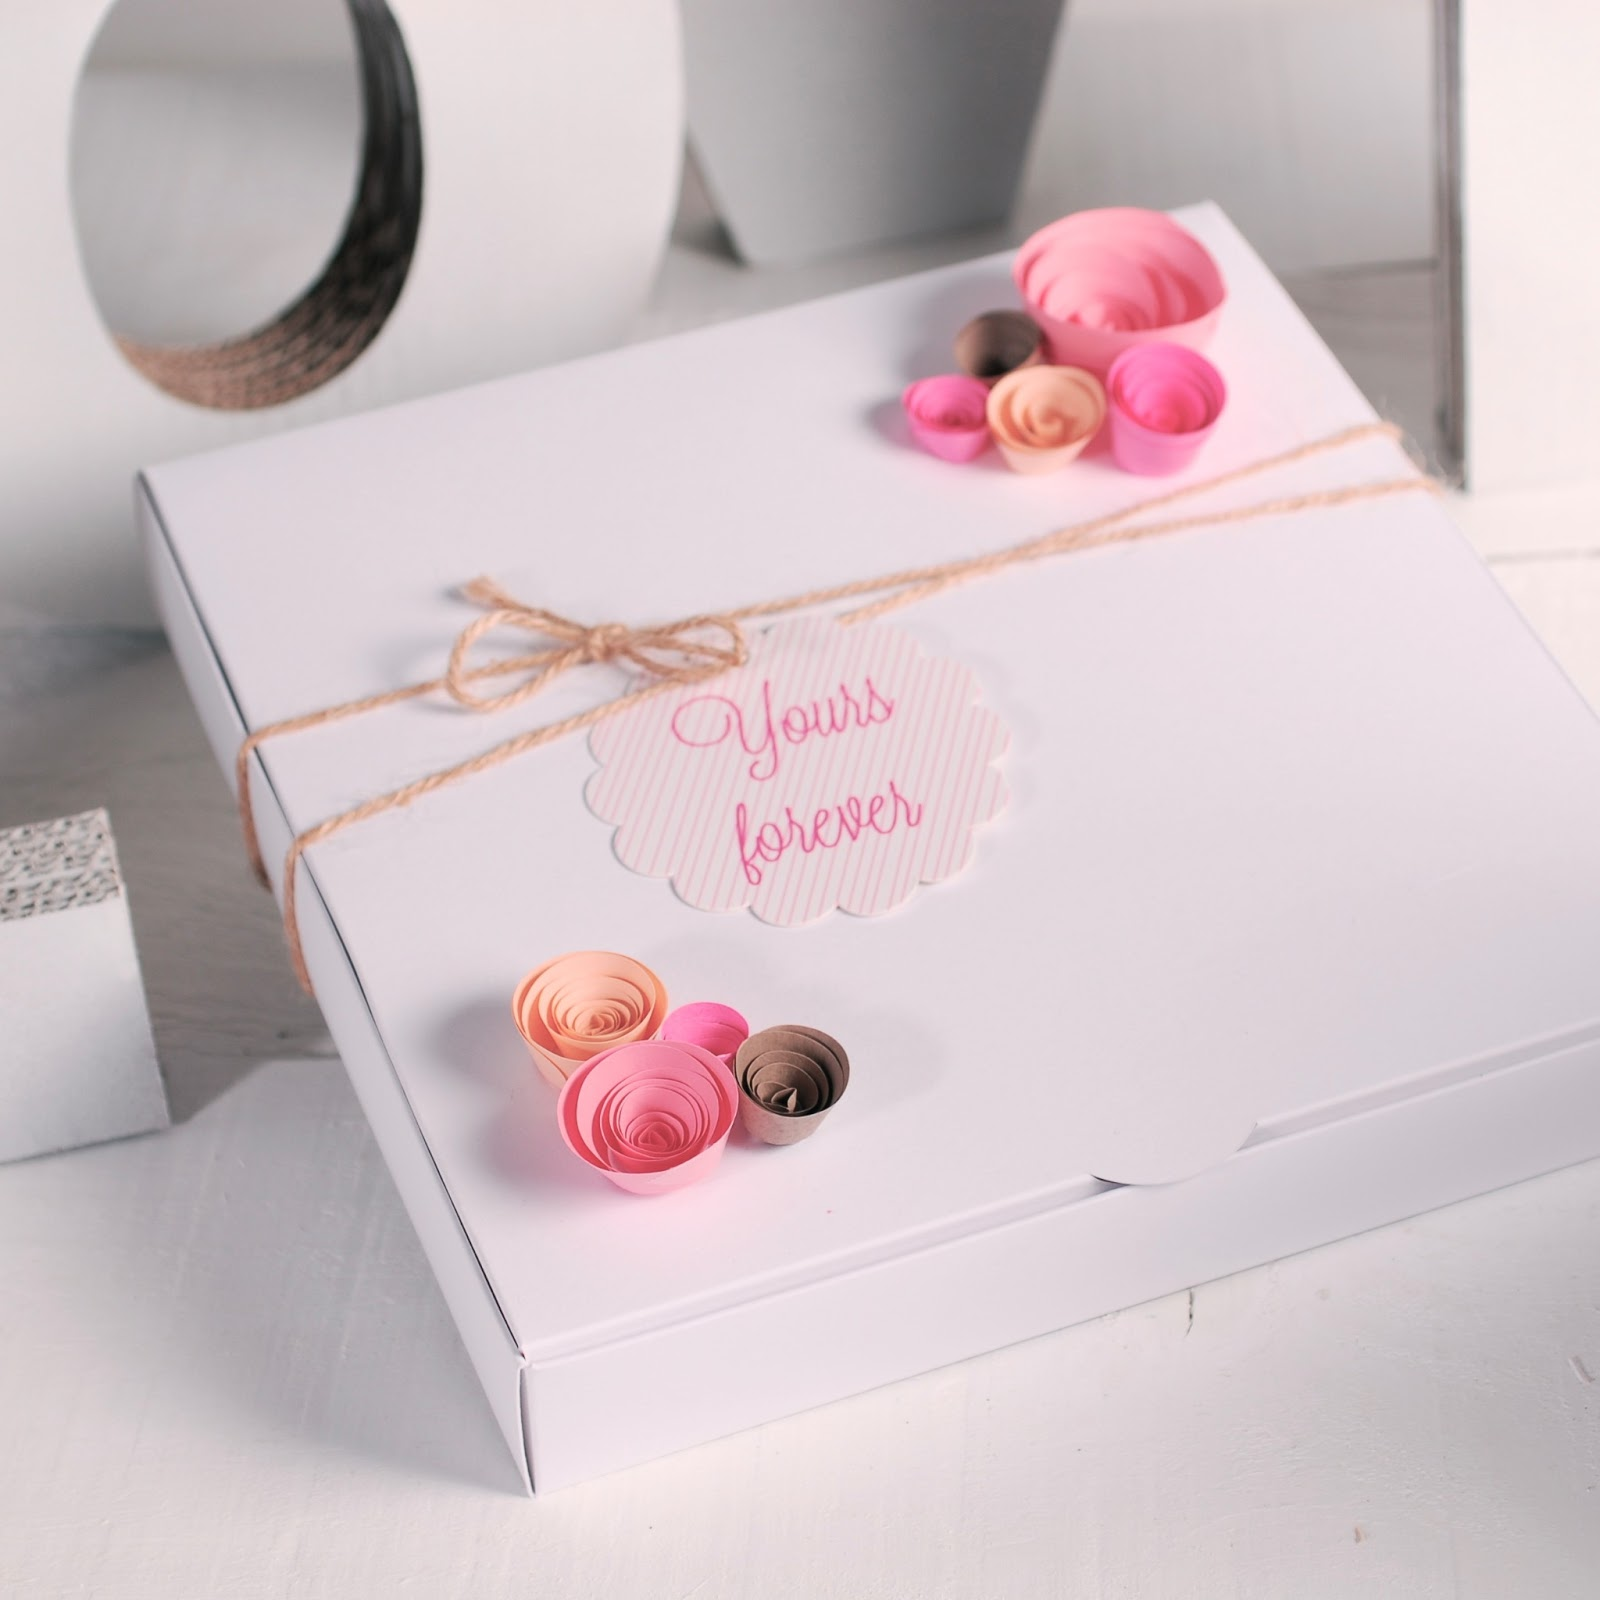 romantic-card-message-gift-wrapping-ideas-box-decoration -